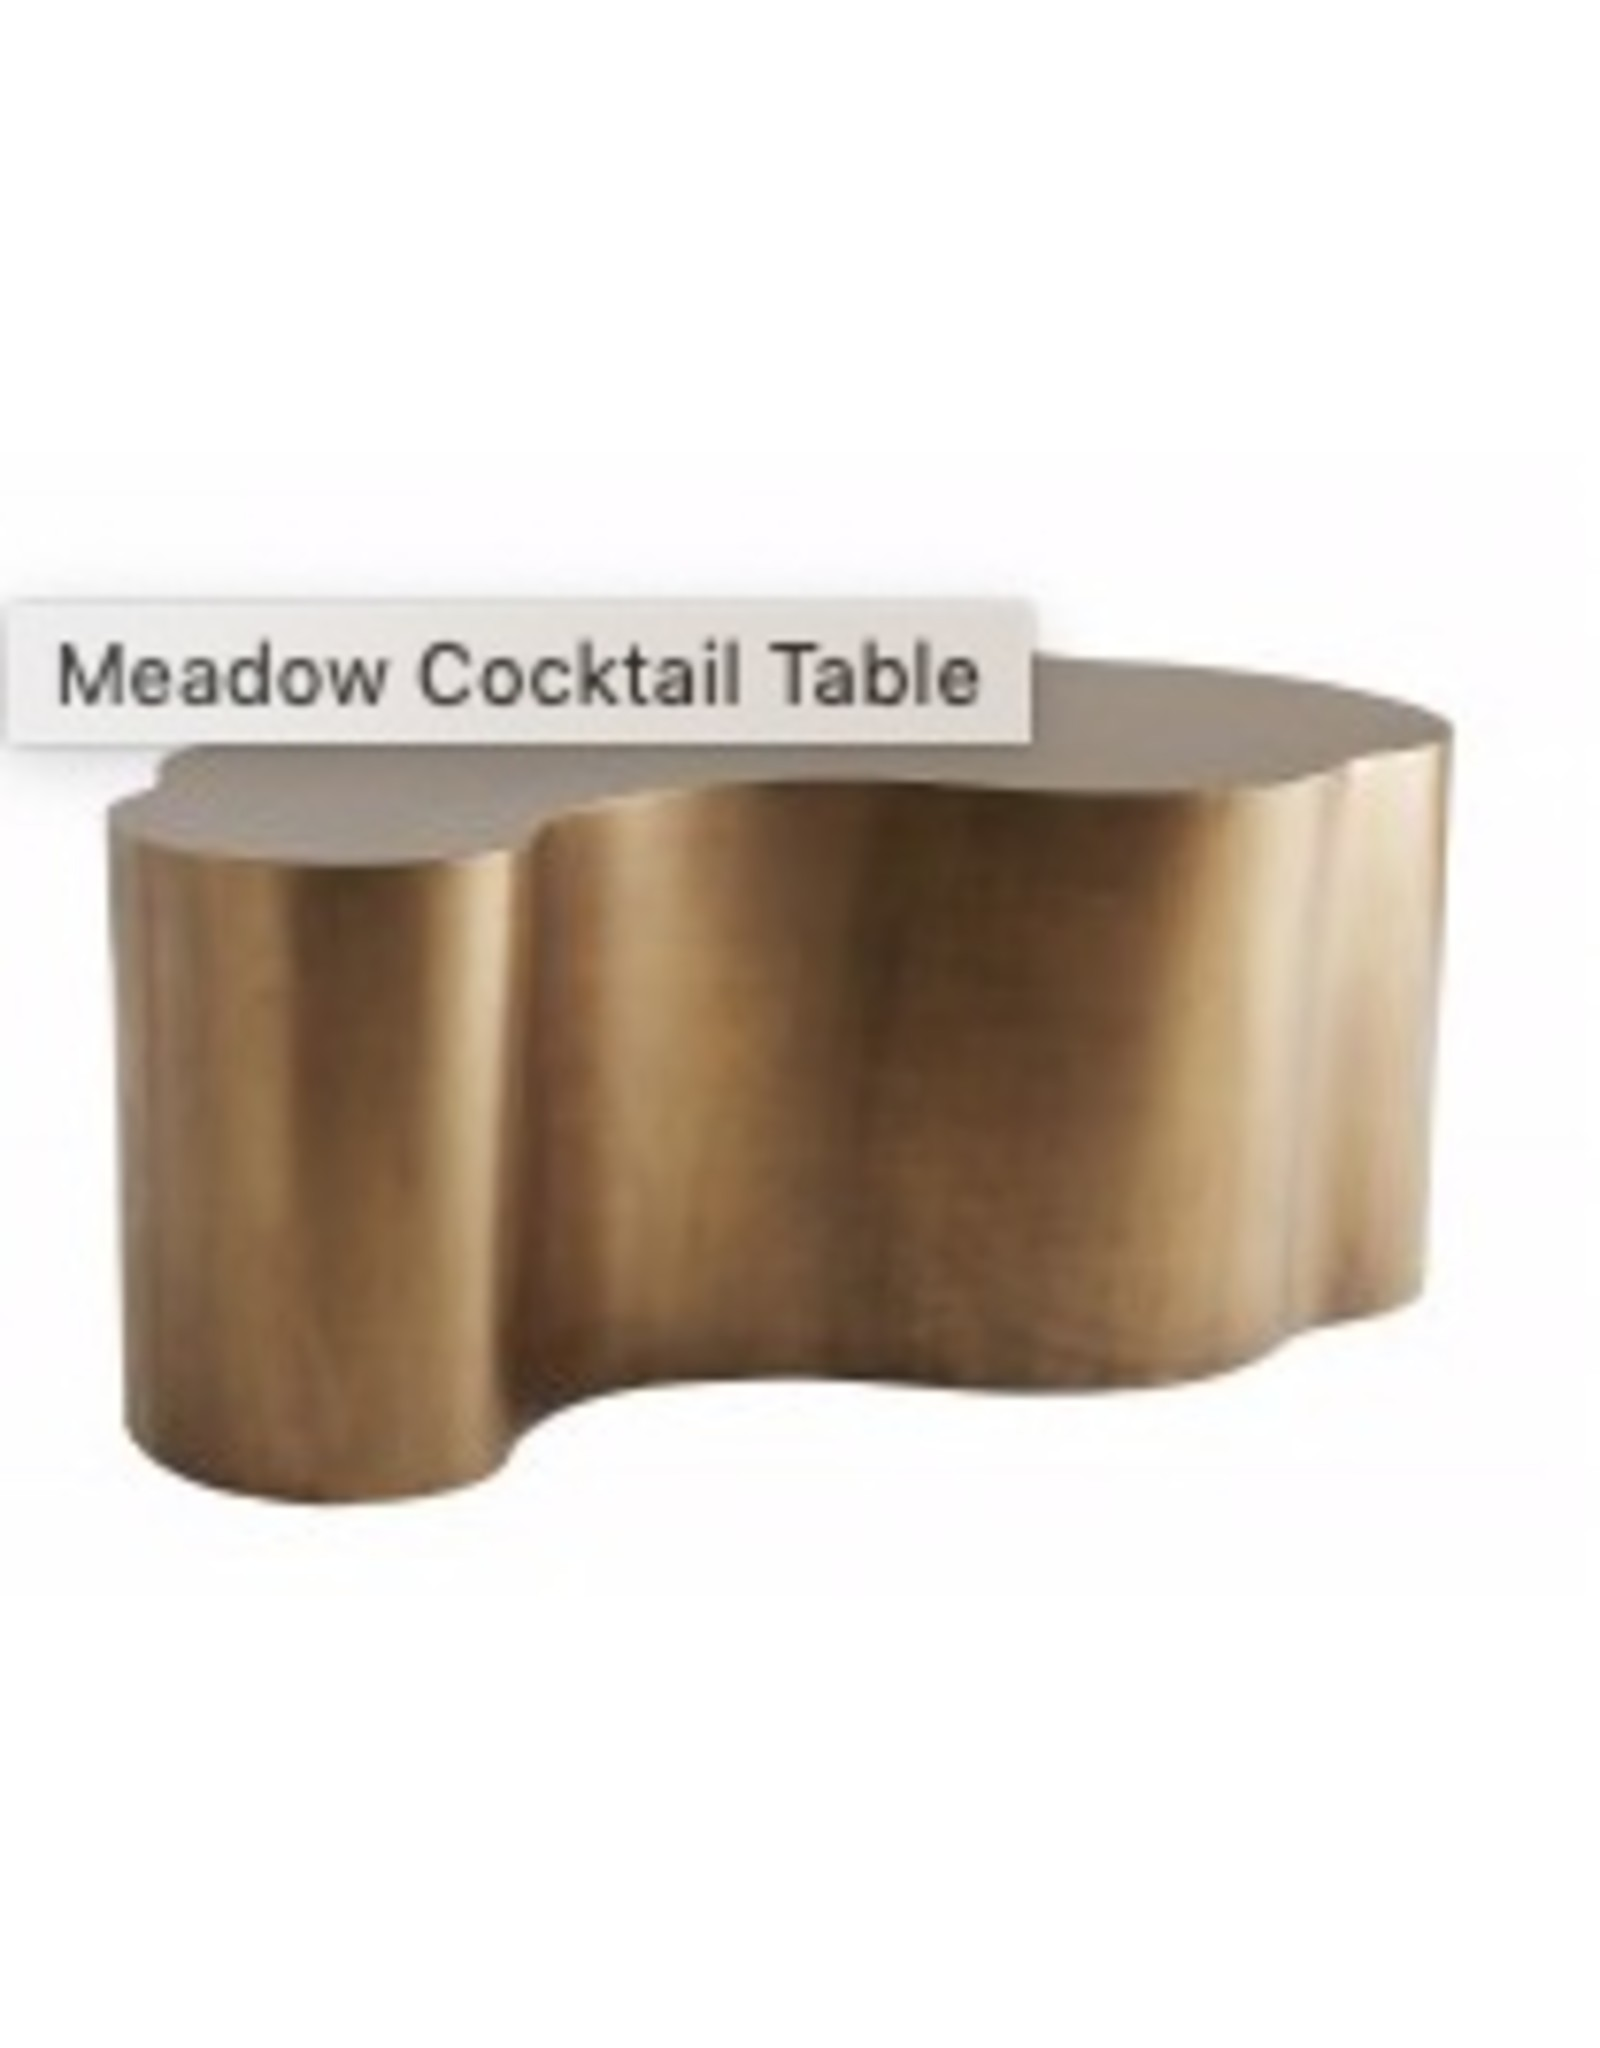 Meadow Cocktail Table